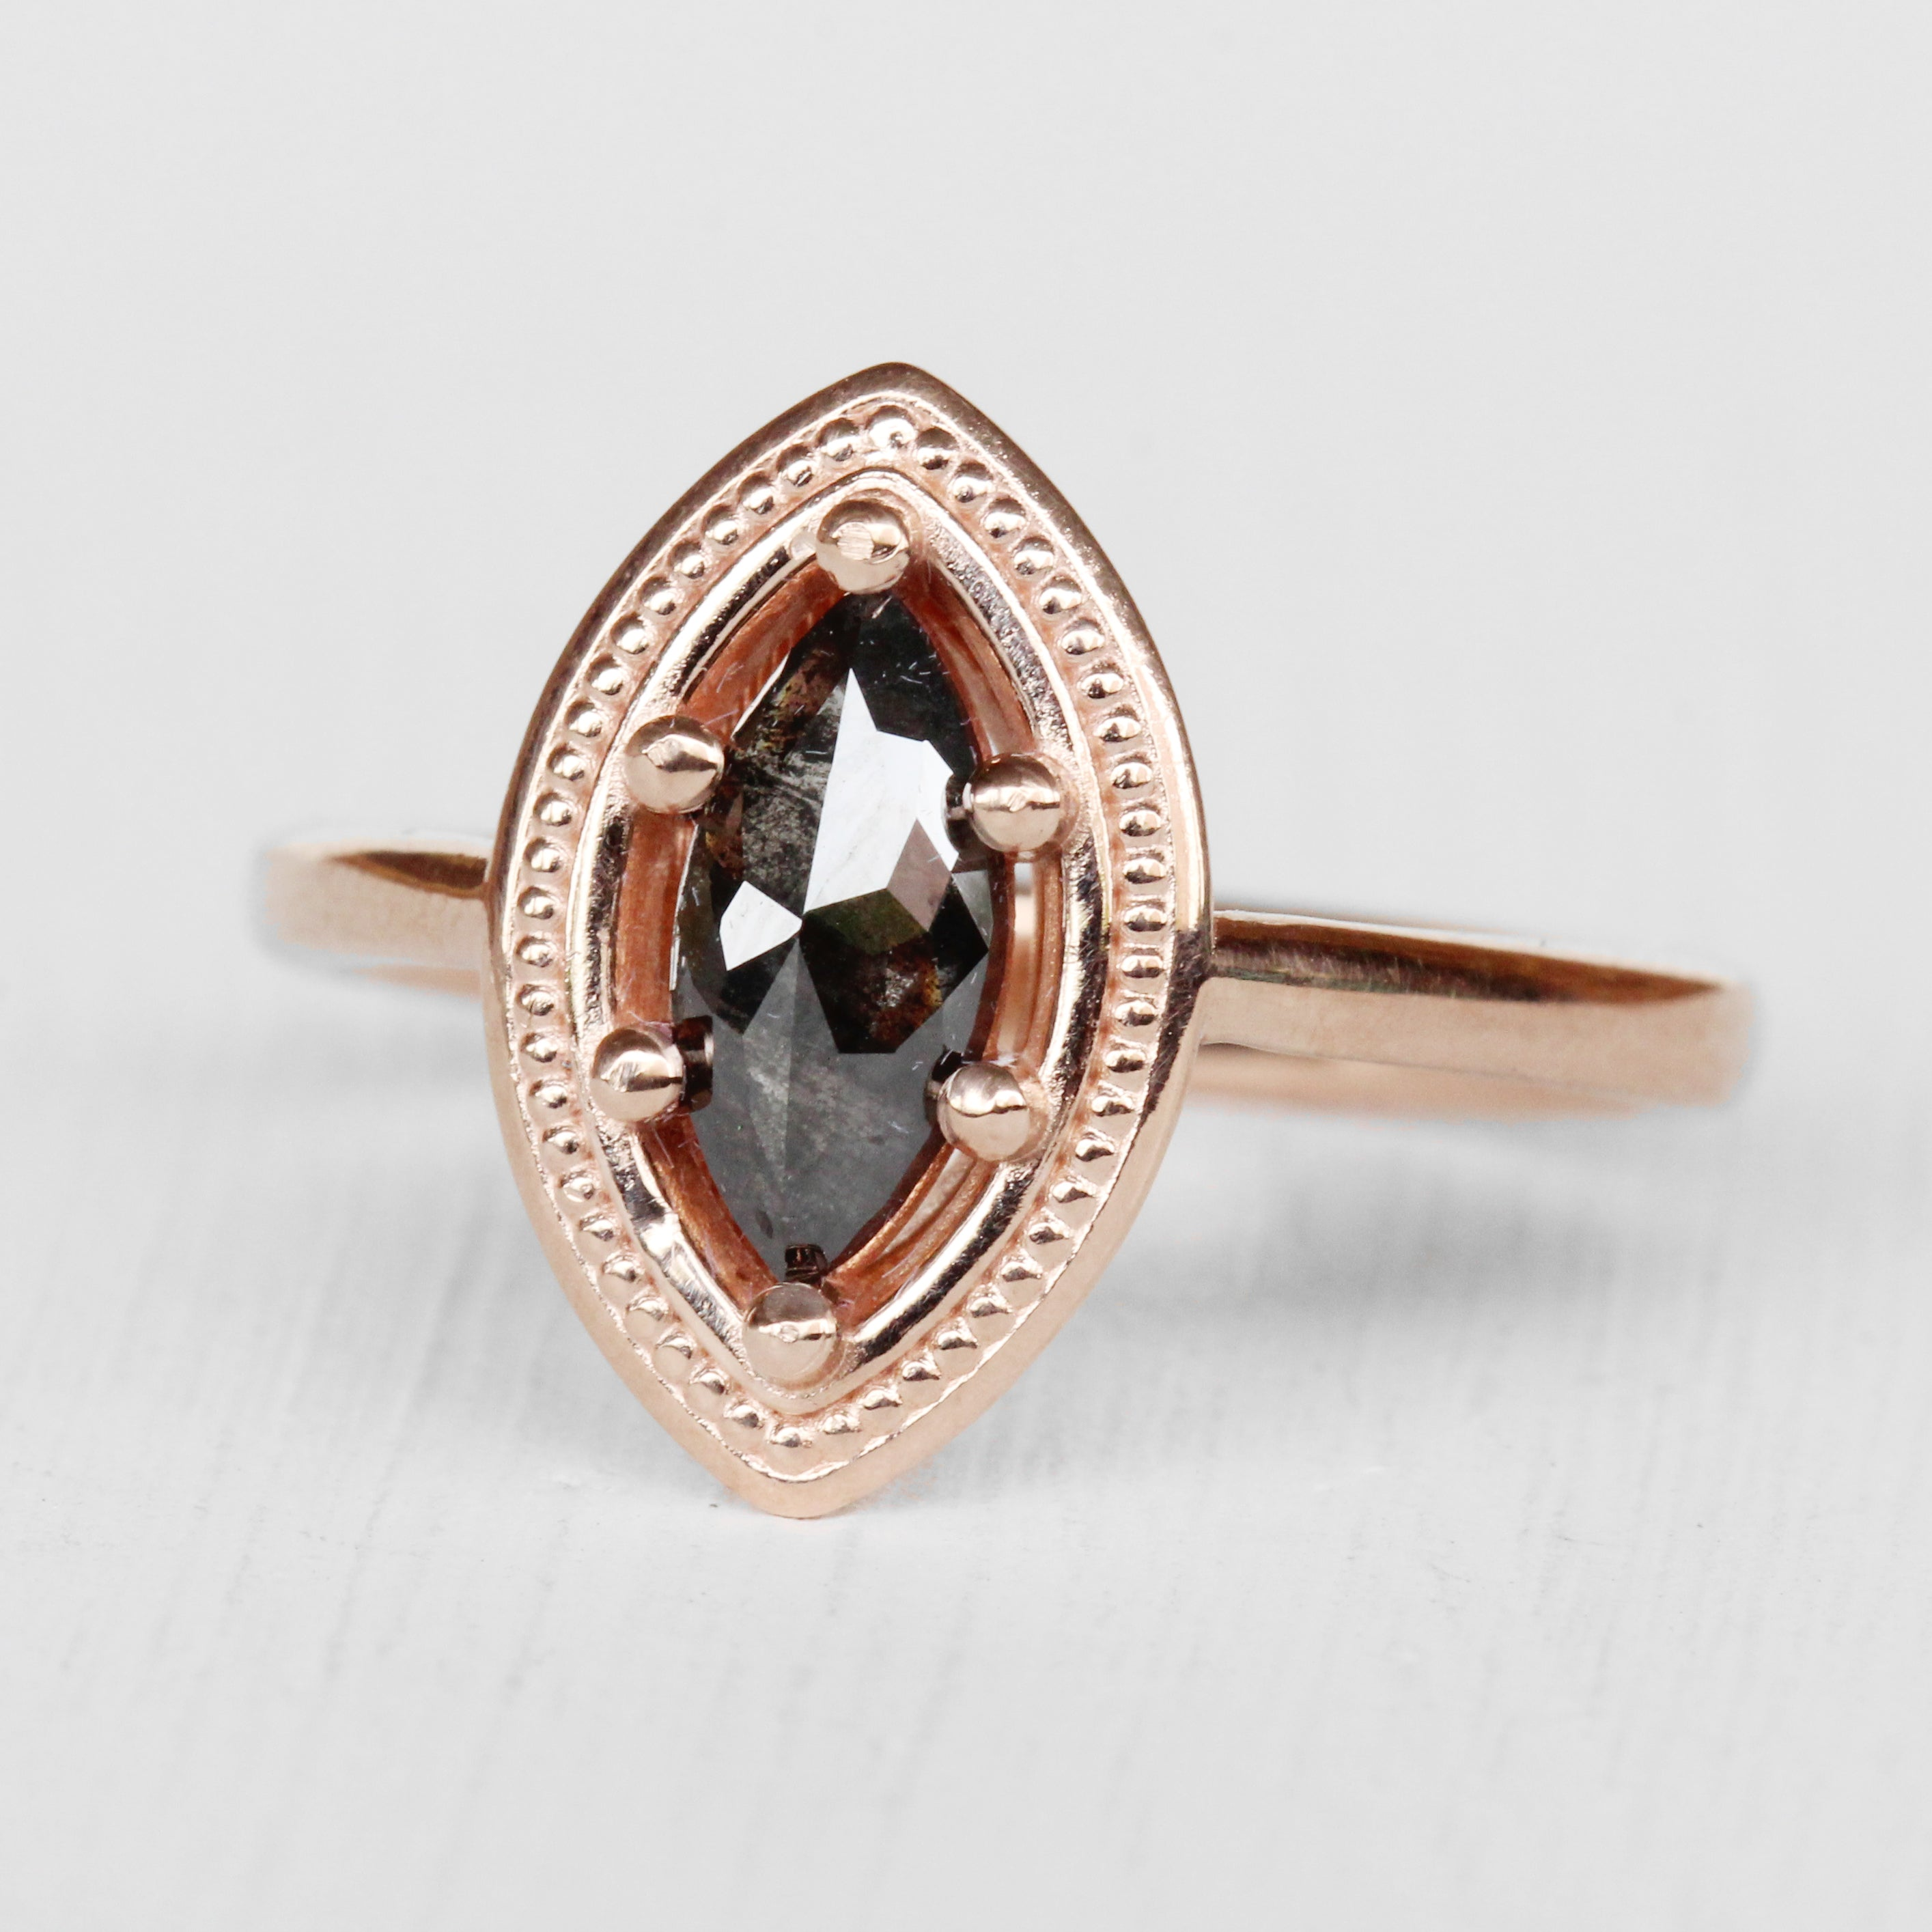 Kitt Ring with a Celestial Marquise Diamond in 10k Rose Gold - Ready to Size and Ship